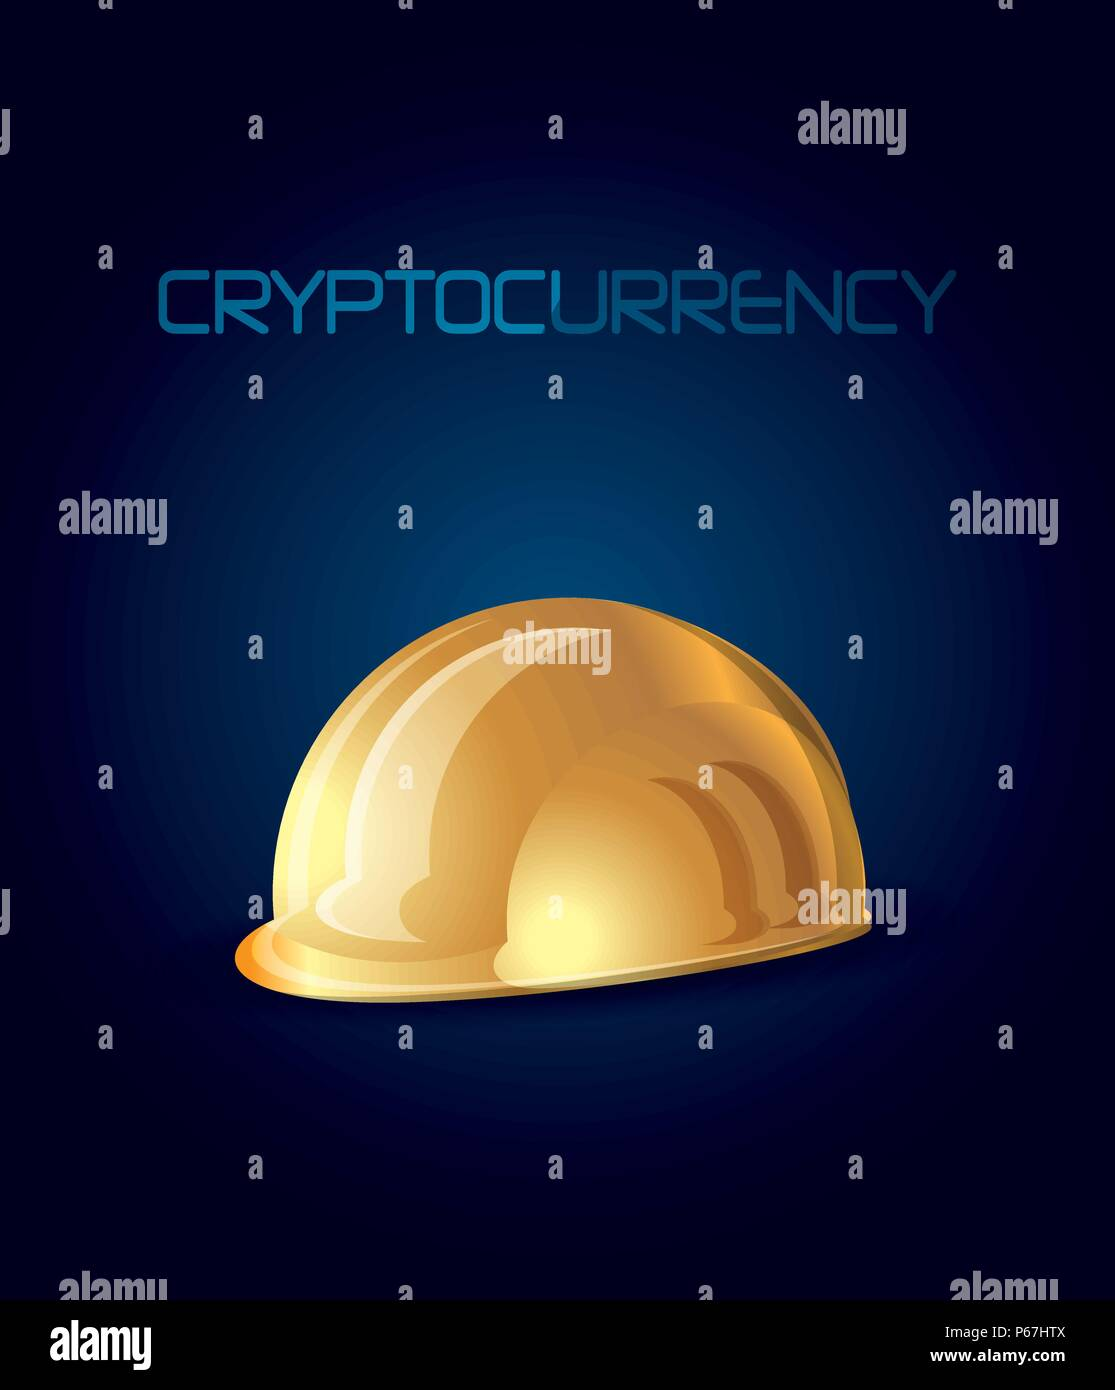 cryptocurrency design with golden helmet over blue background, colorful design. vector illustration - Stock Vector